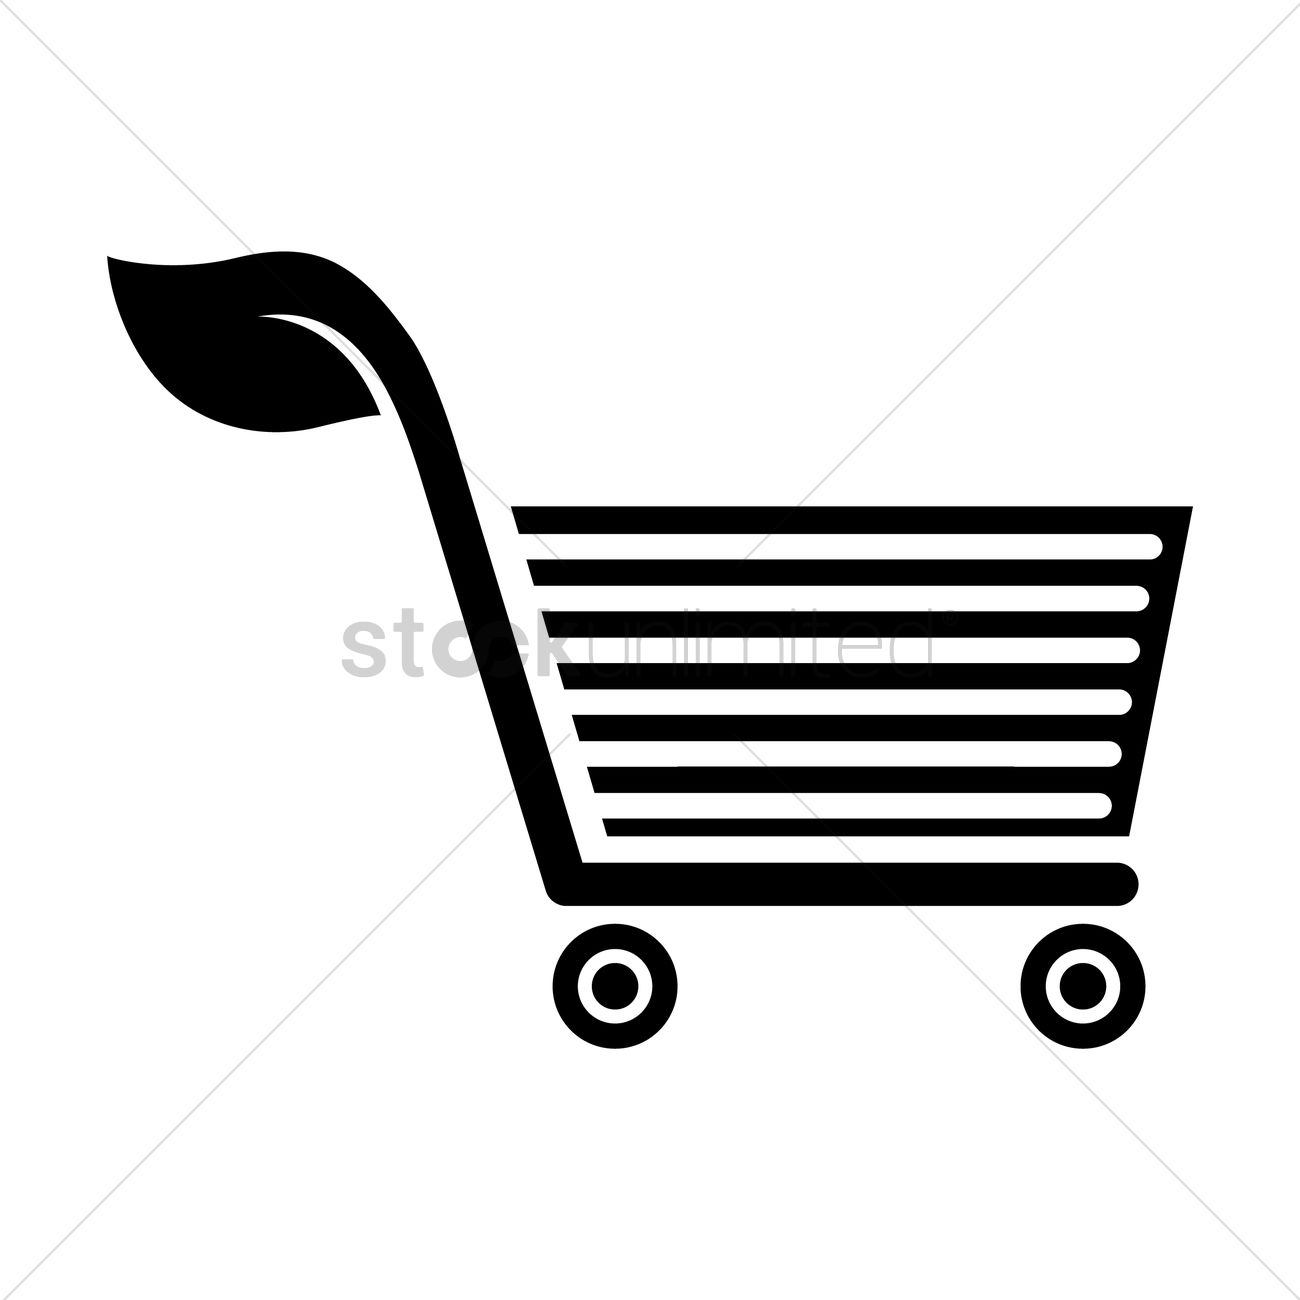 1300x1300 Silhouette Of Trolley Vector Image